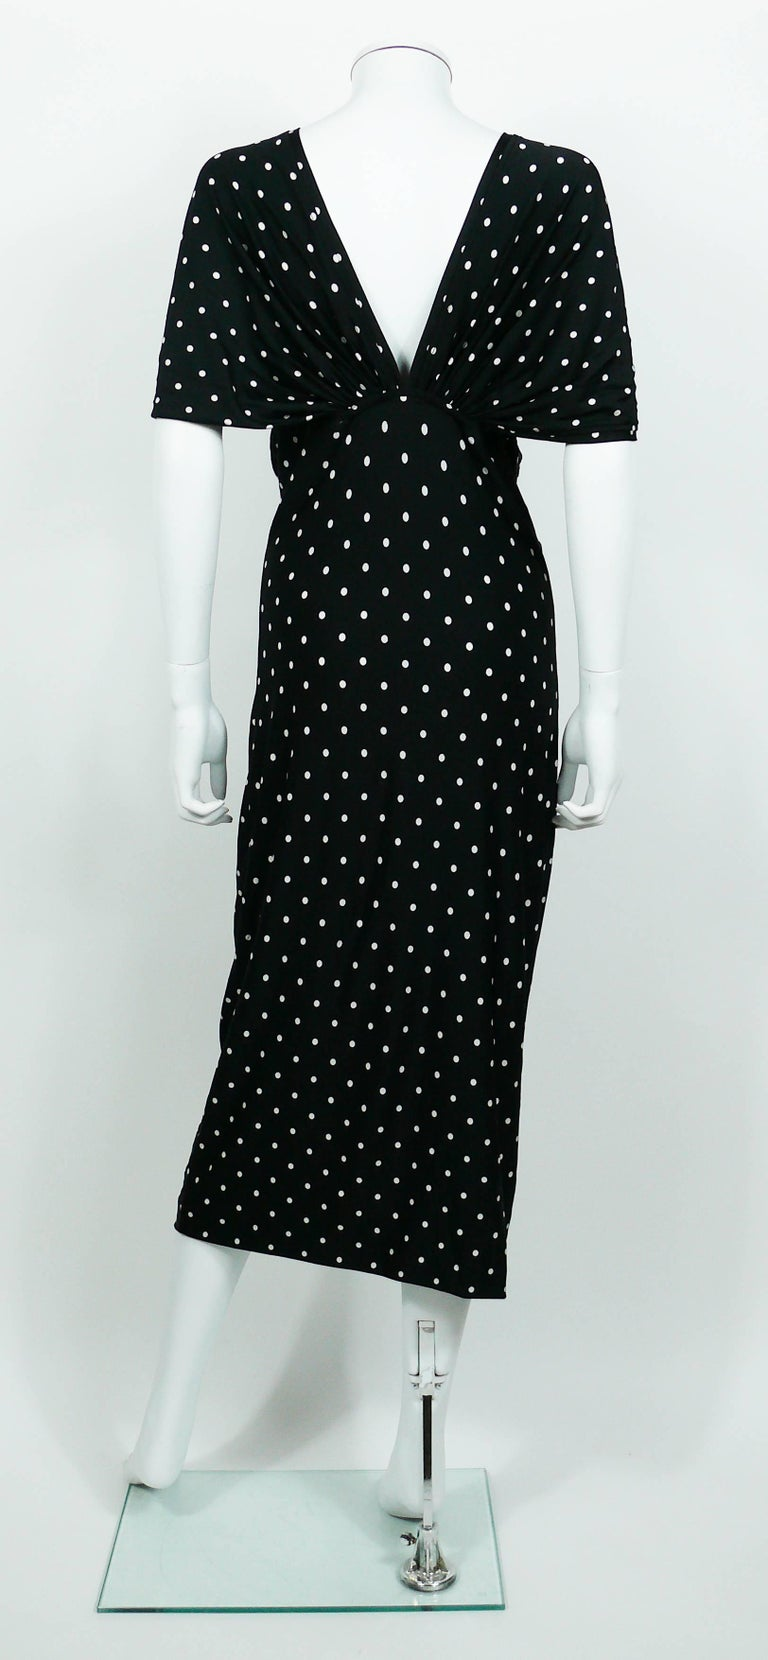 Patrick Kelly Vintage Black White Polka Dot Dress US Size 10 For Sale 4